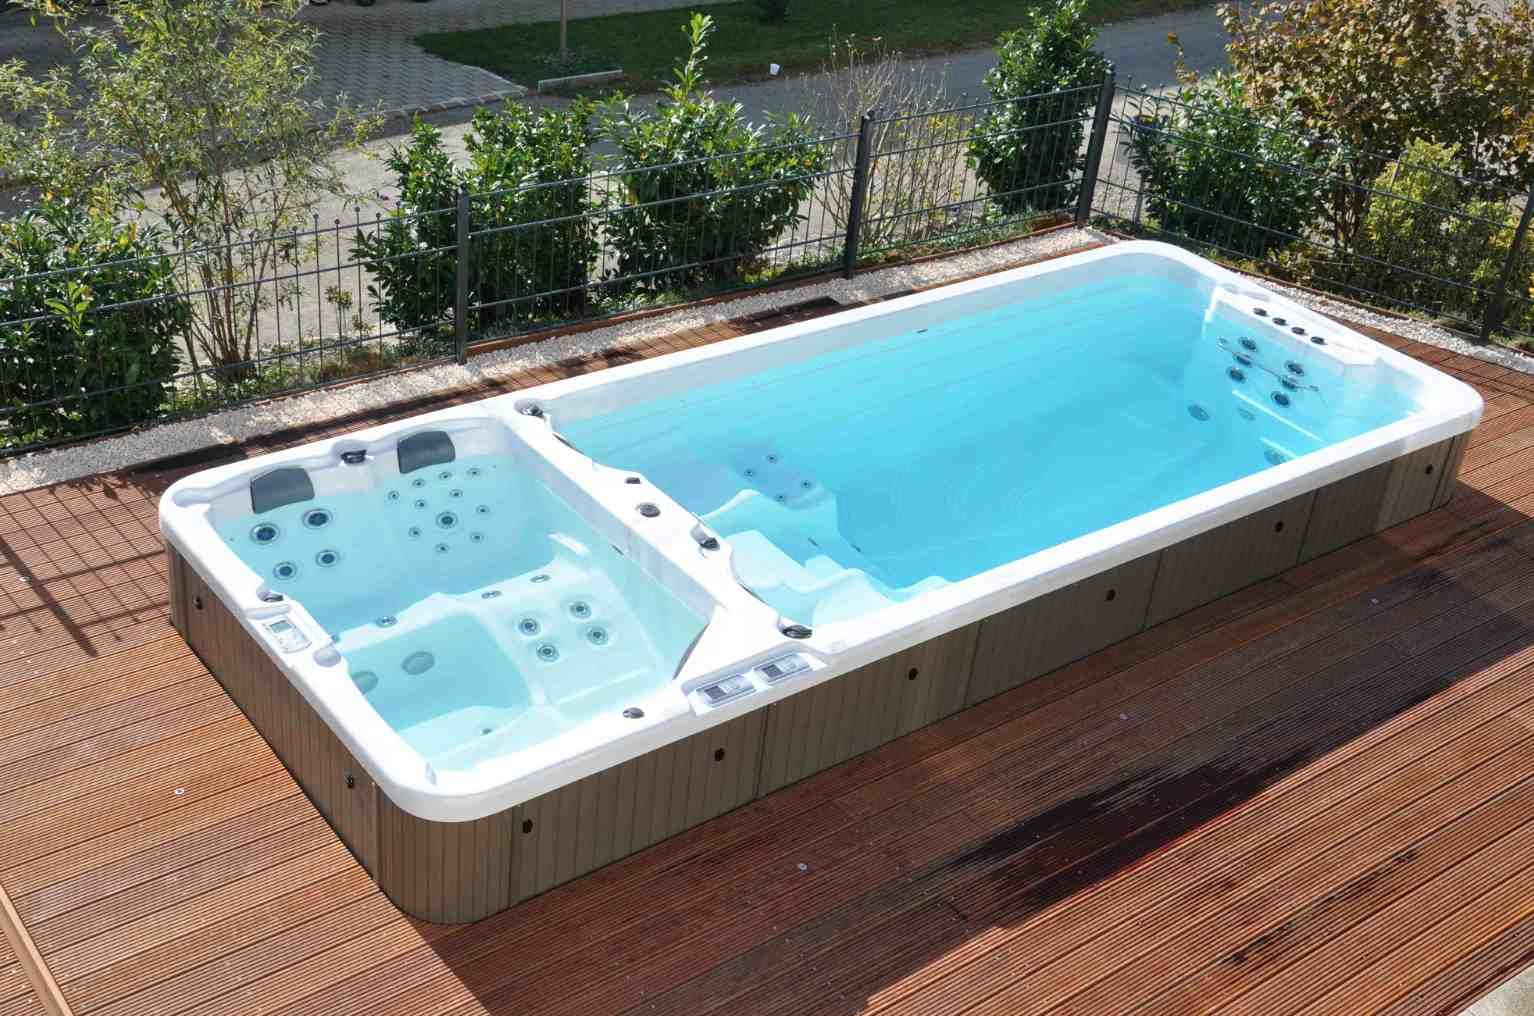 Whirlpool Spa Vs Hot Tub